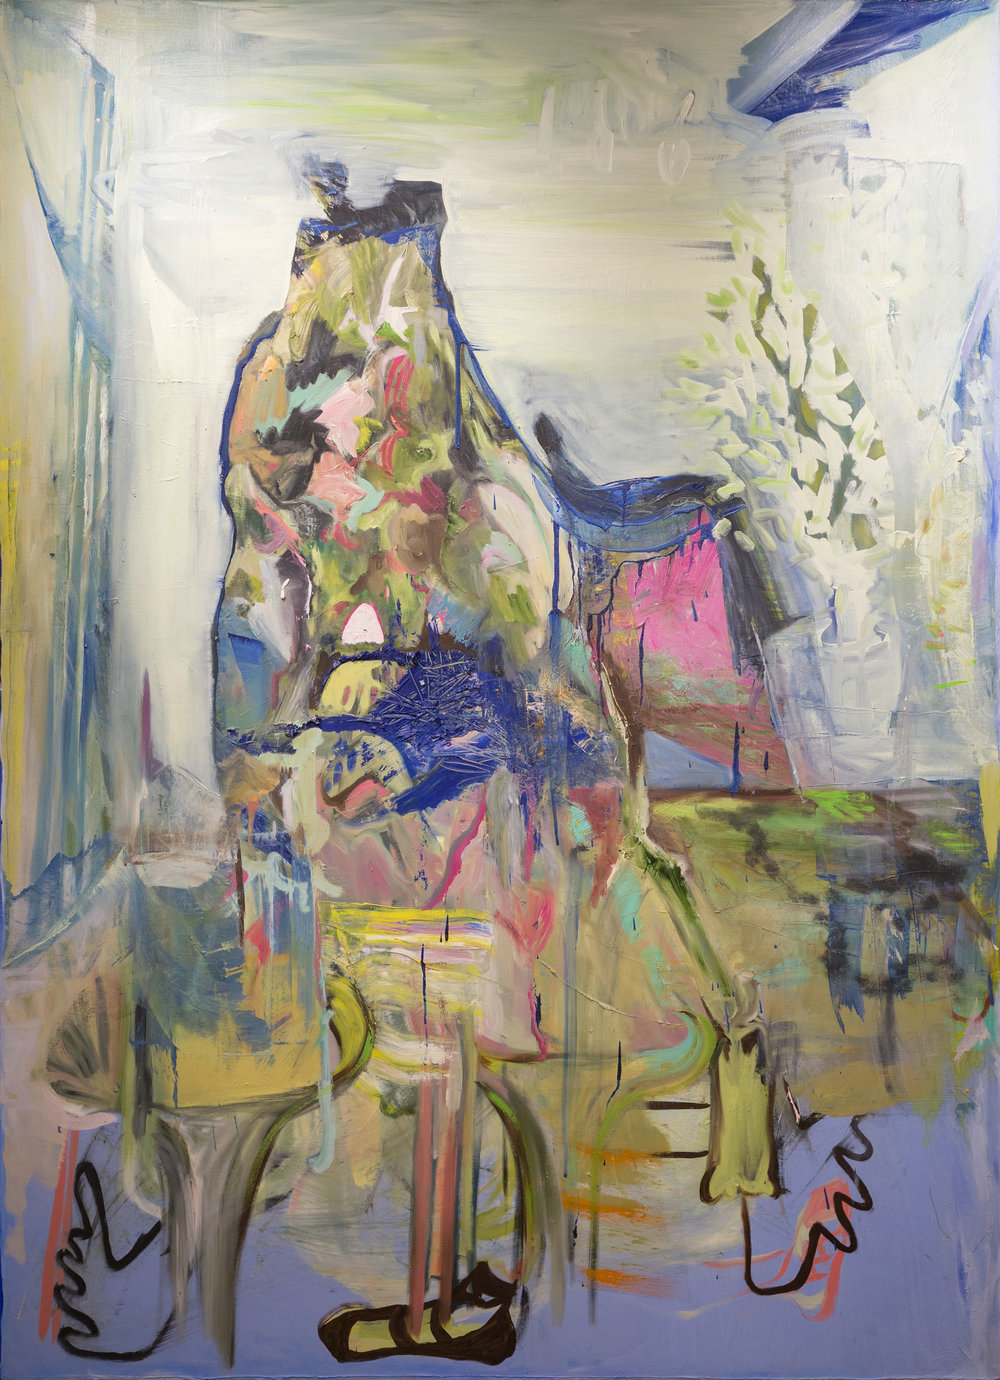 Natasha Doyon,  Living Room , 2013, oil on canvas, 198 x 137 cm